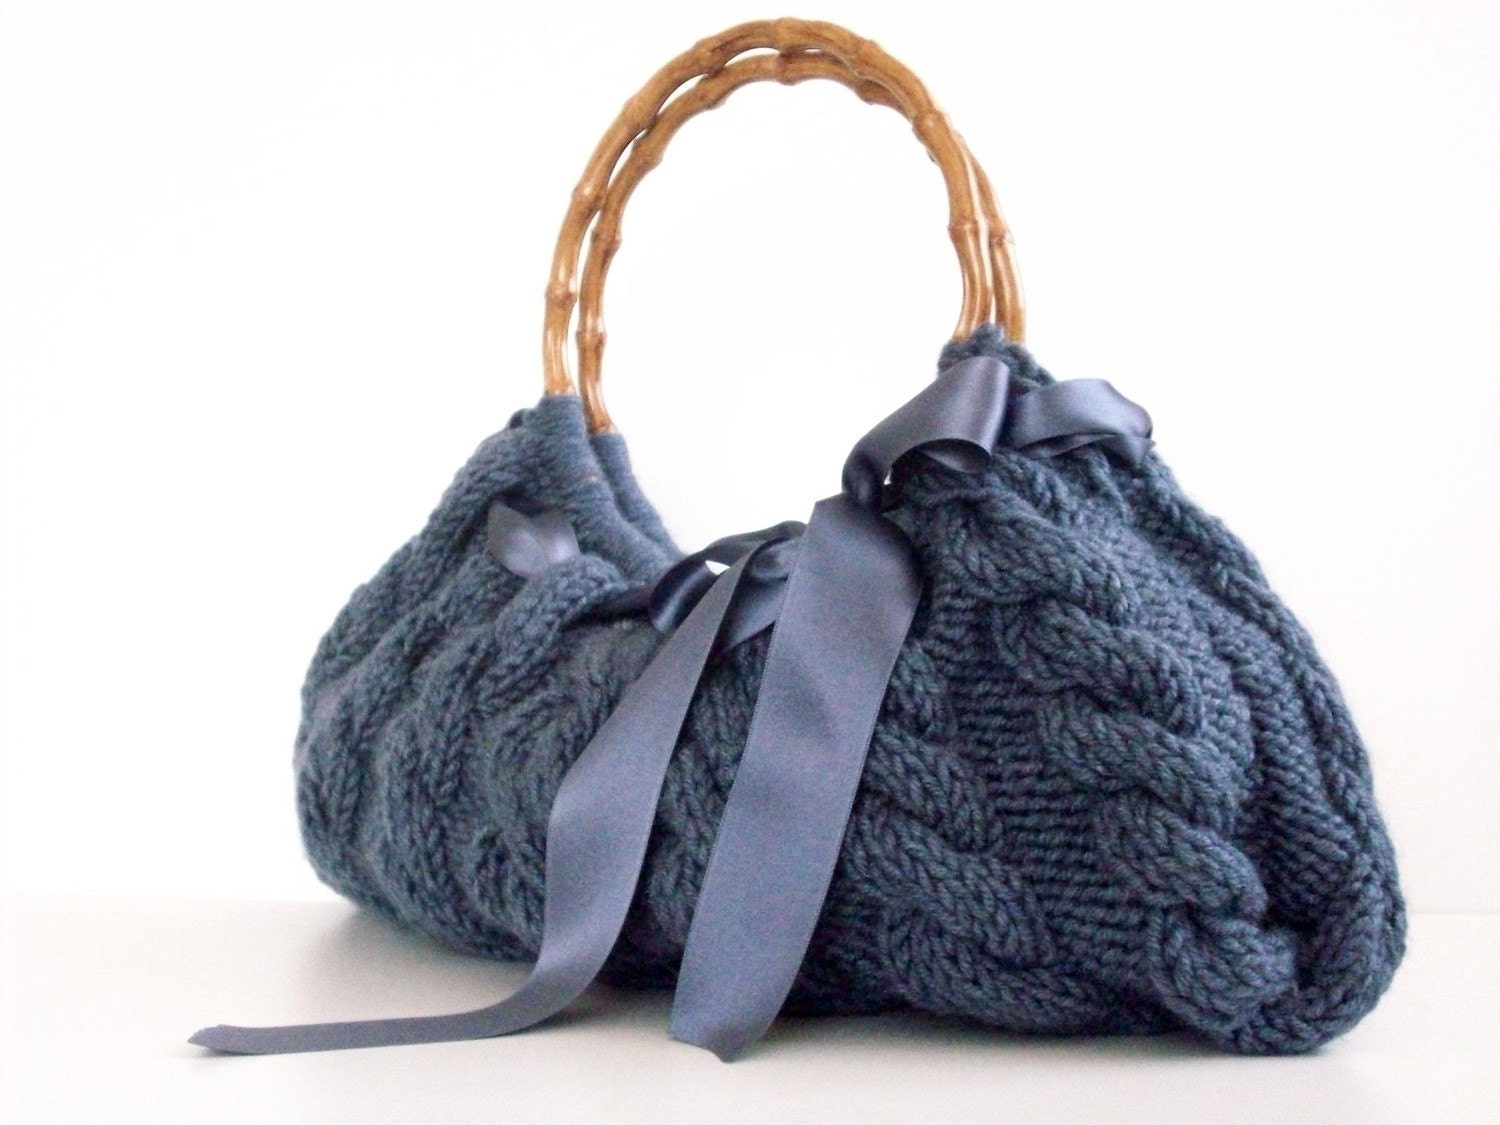 SHOULDER Bag, Handbag Everyday Knitted Bag Nr.0115 Dark Denim Melange